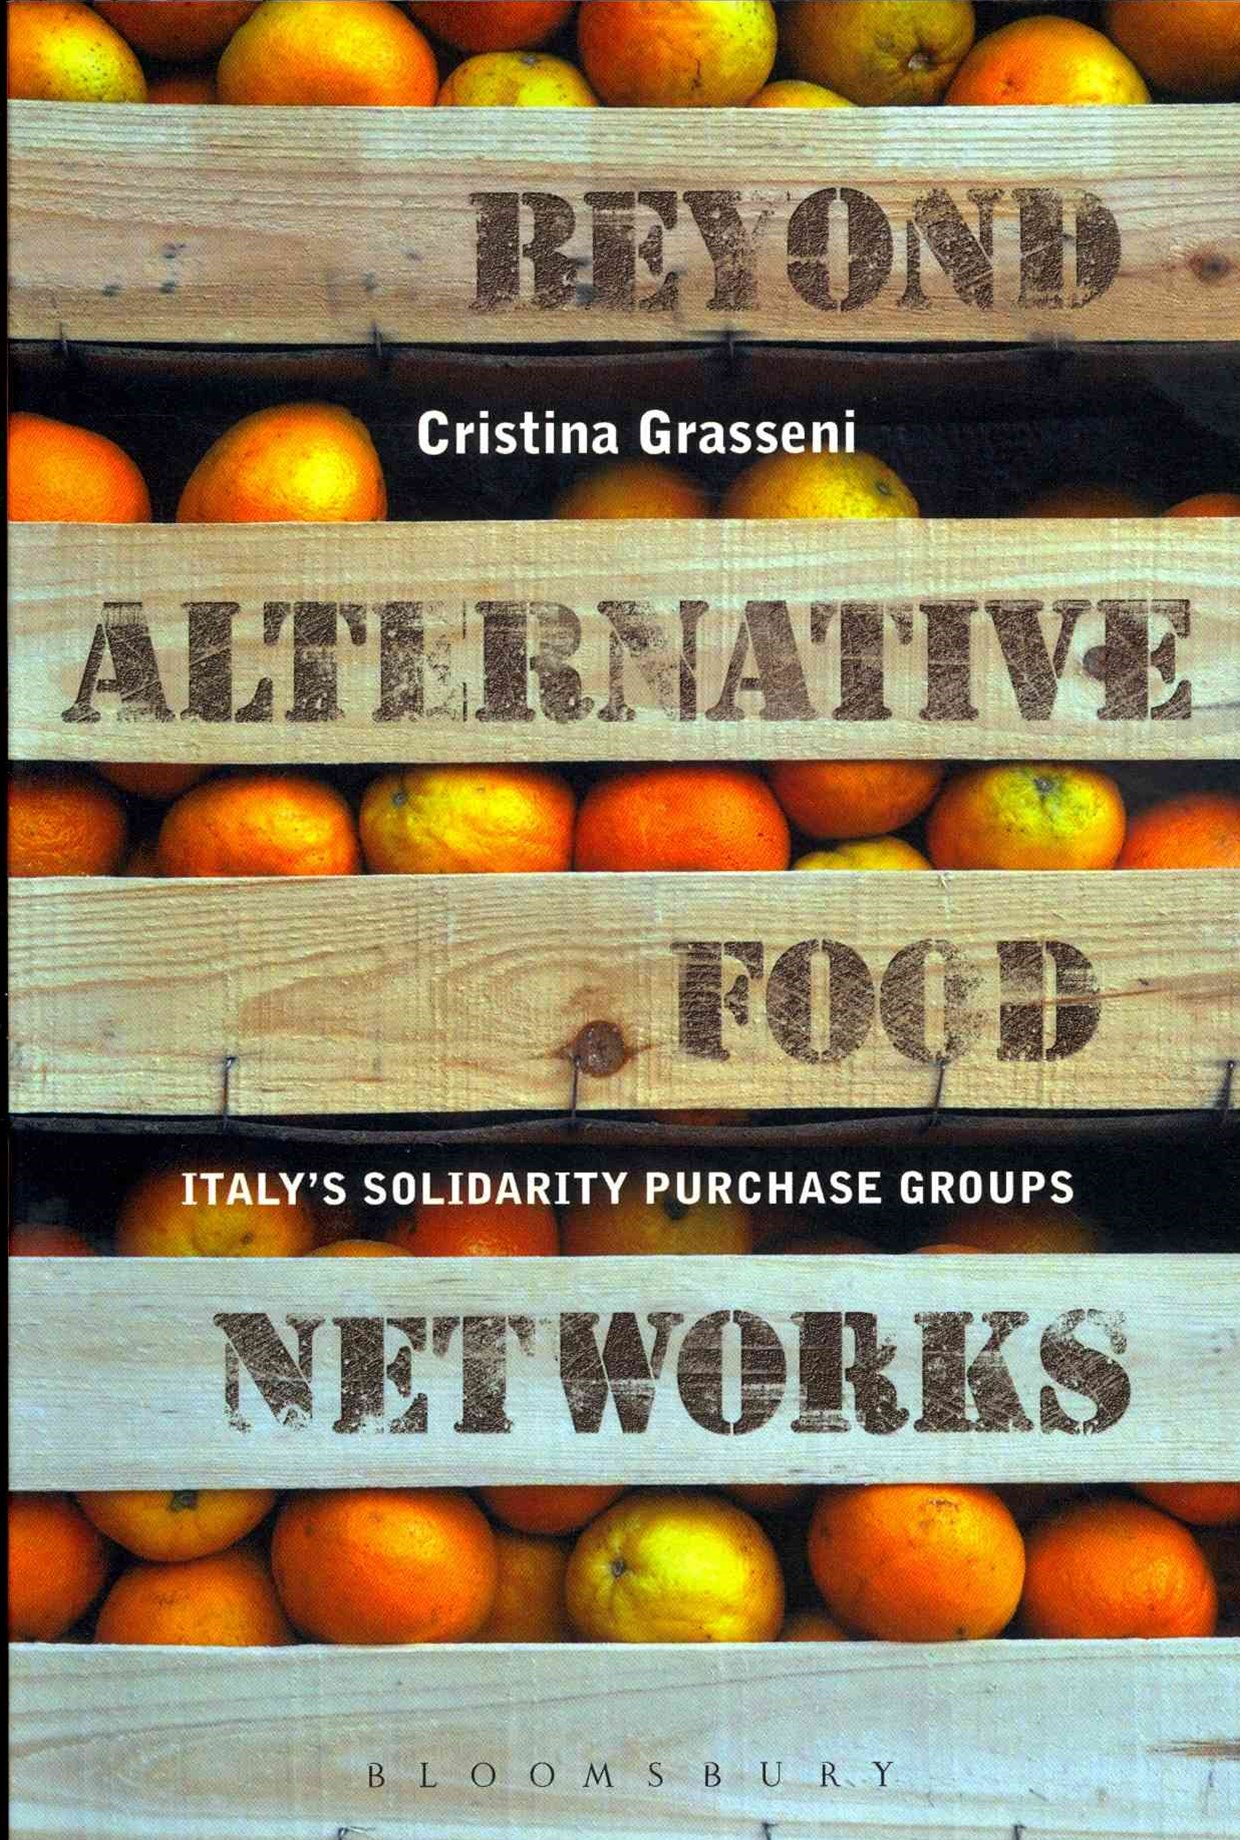 Beyond Alternative Food Networks